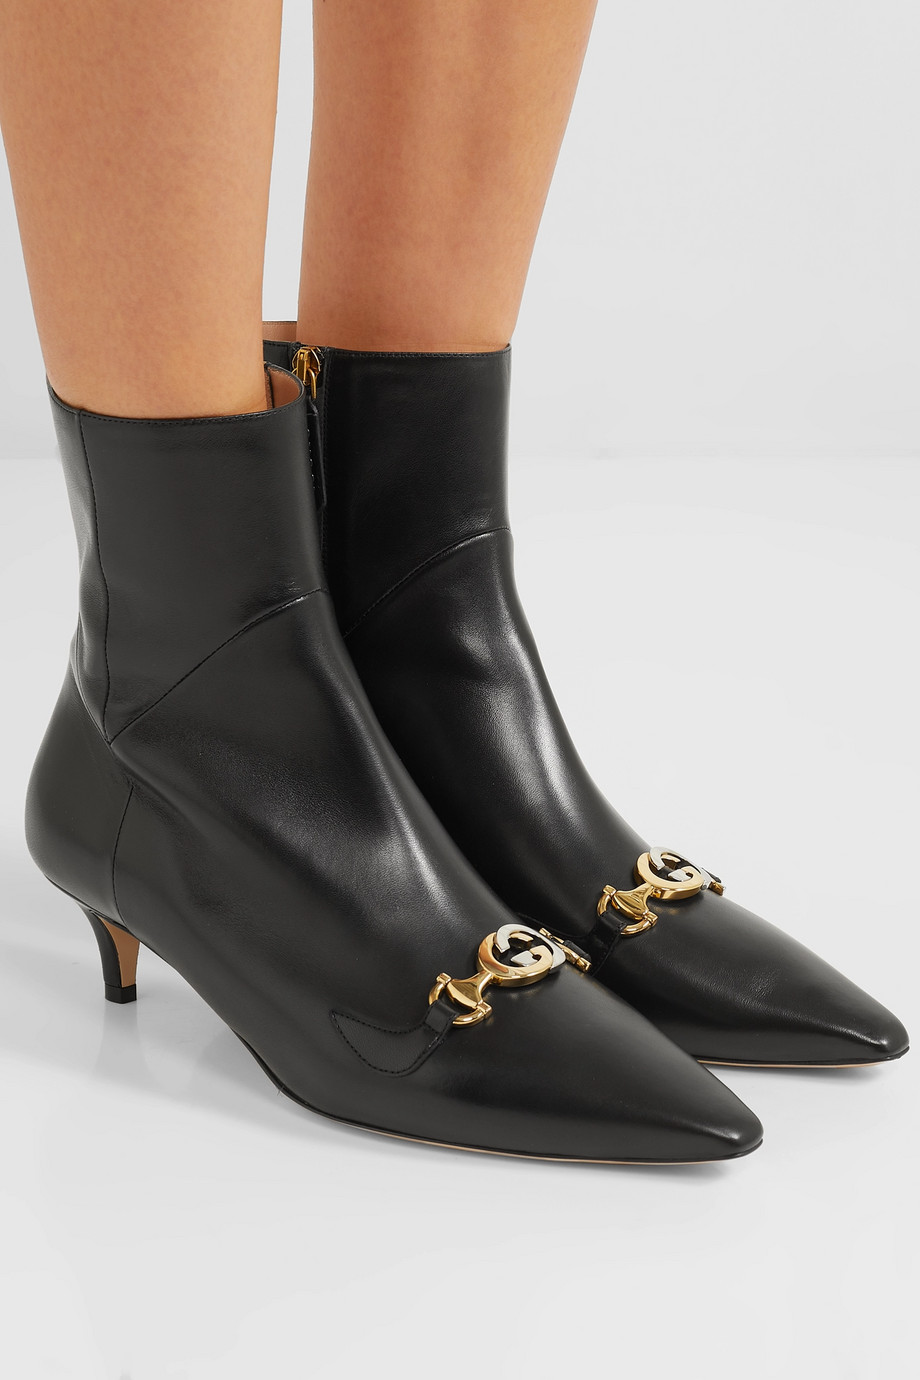 Gucci Zumi leather ankle boots